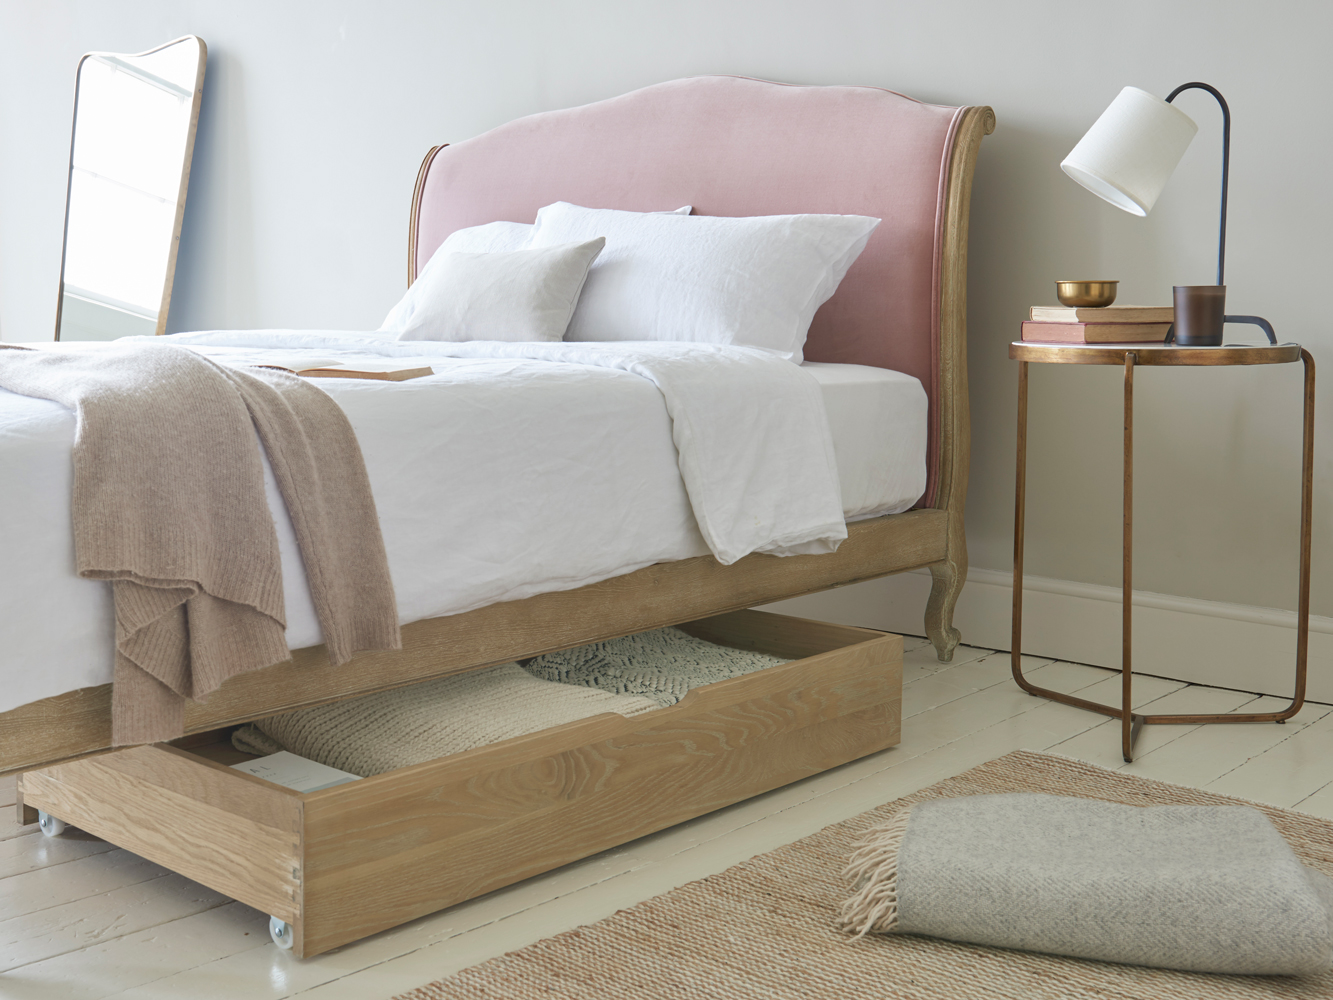 Image of: Bed Solution Storage Drawers Underneath